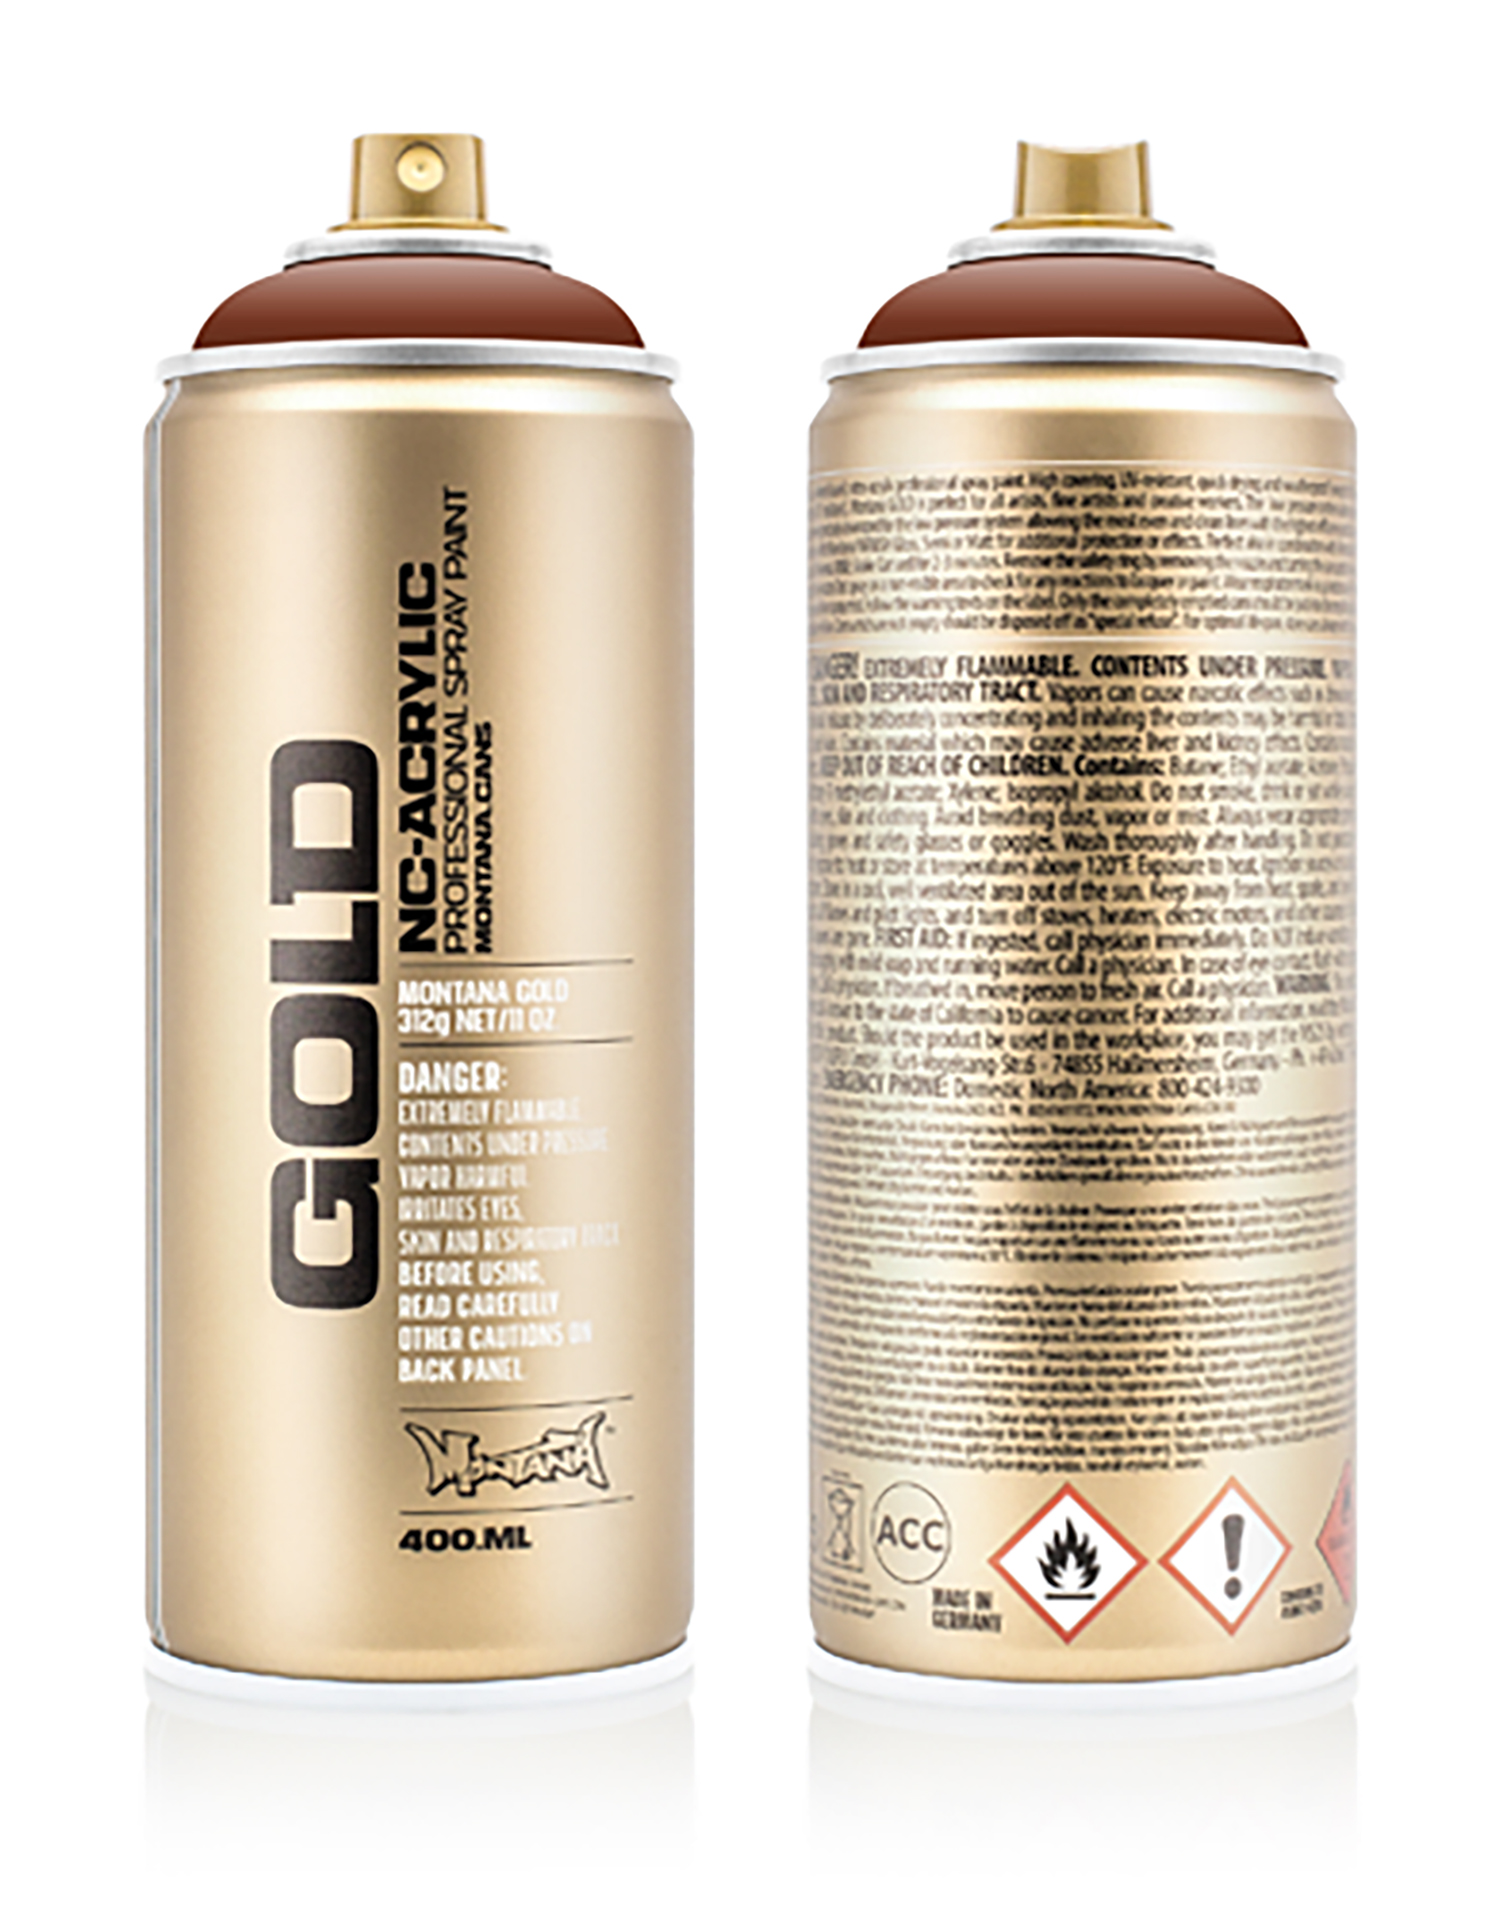 MONTANA-GOLD-SPRAY-400ML-G-8100